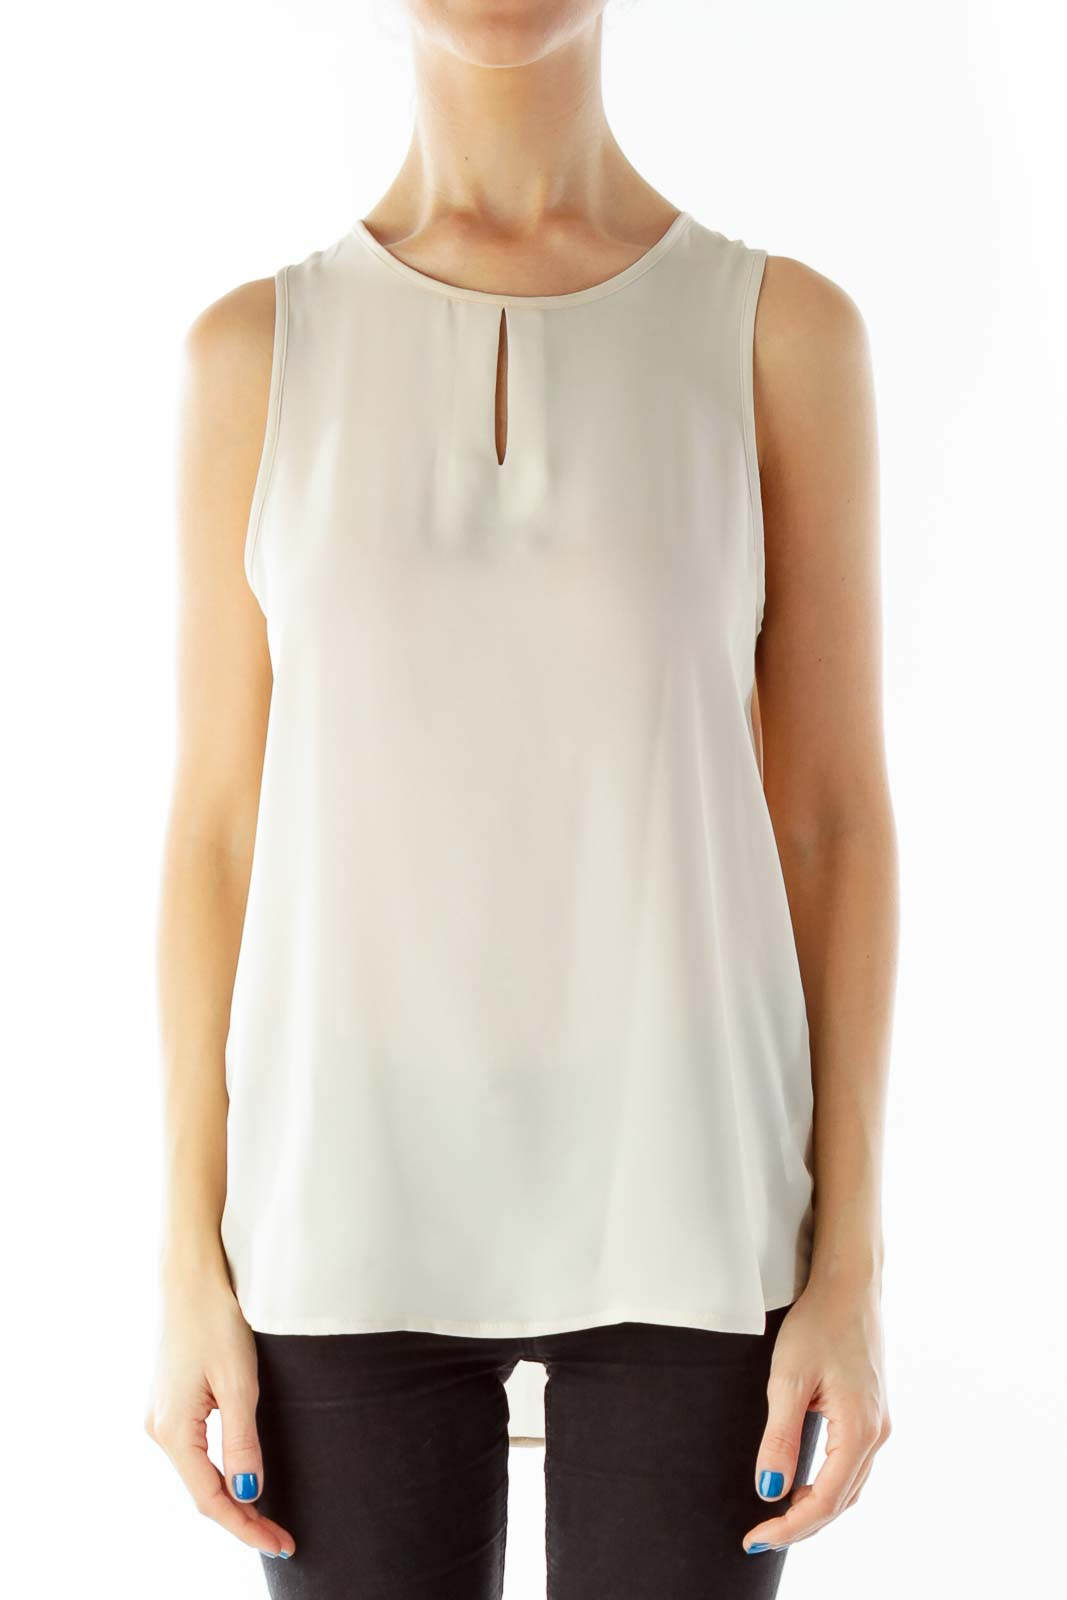 Beige See-Through Cut-Out Tank Top Front